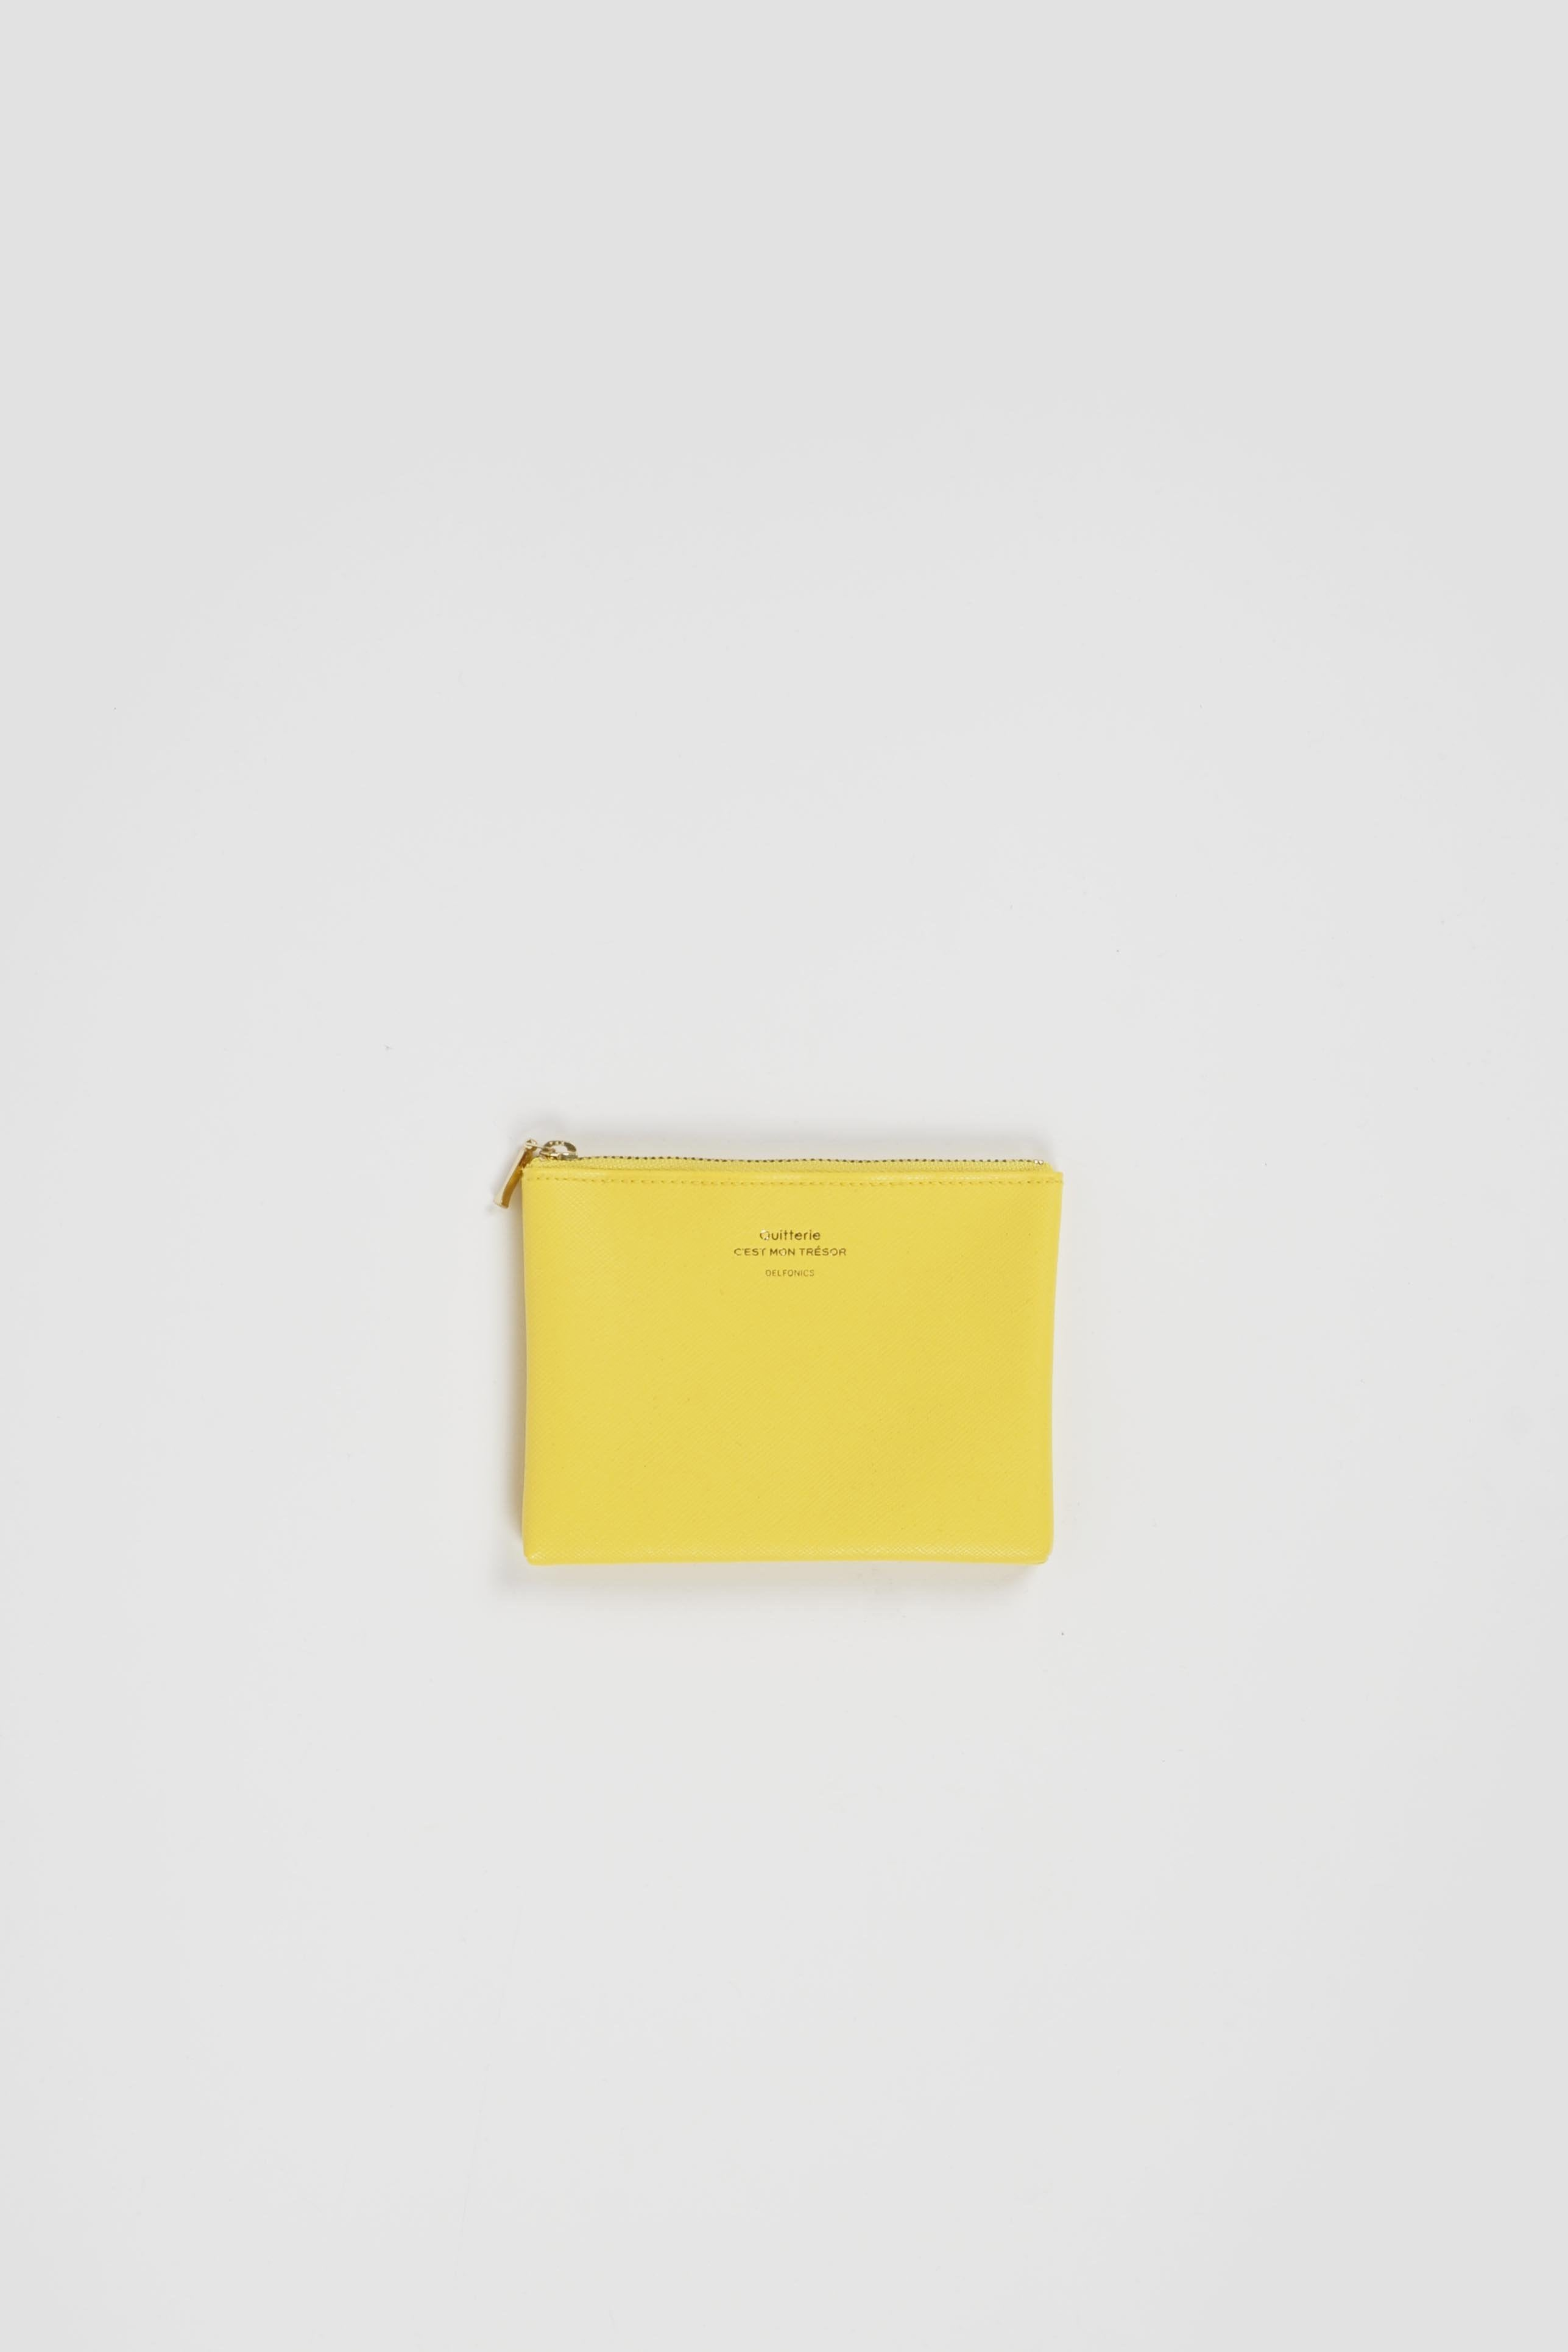 Quitterie Pouch Small